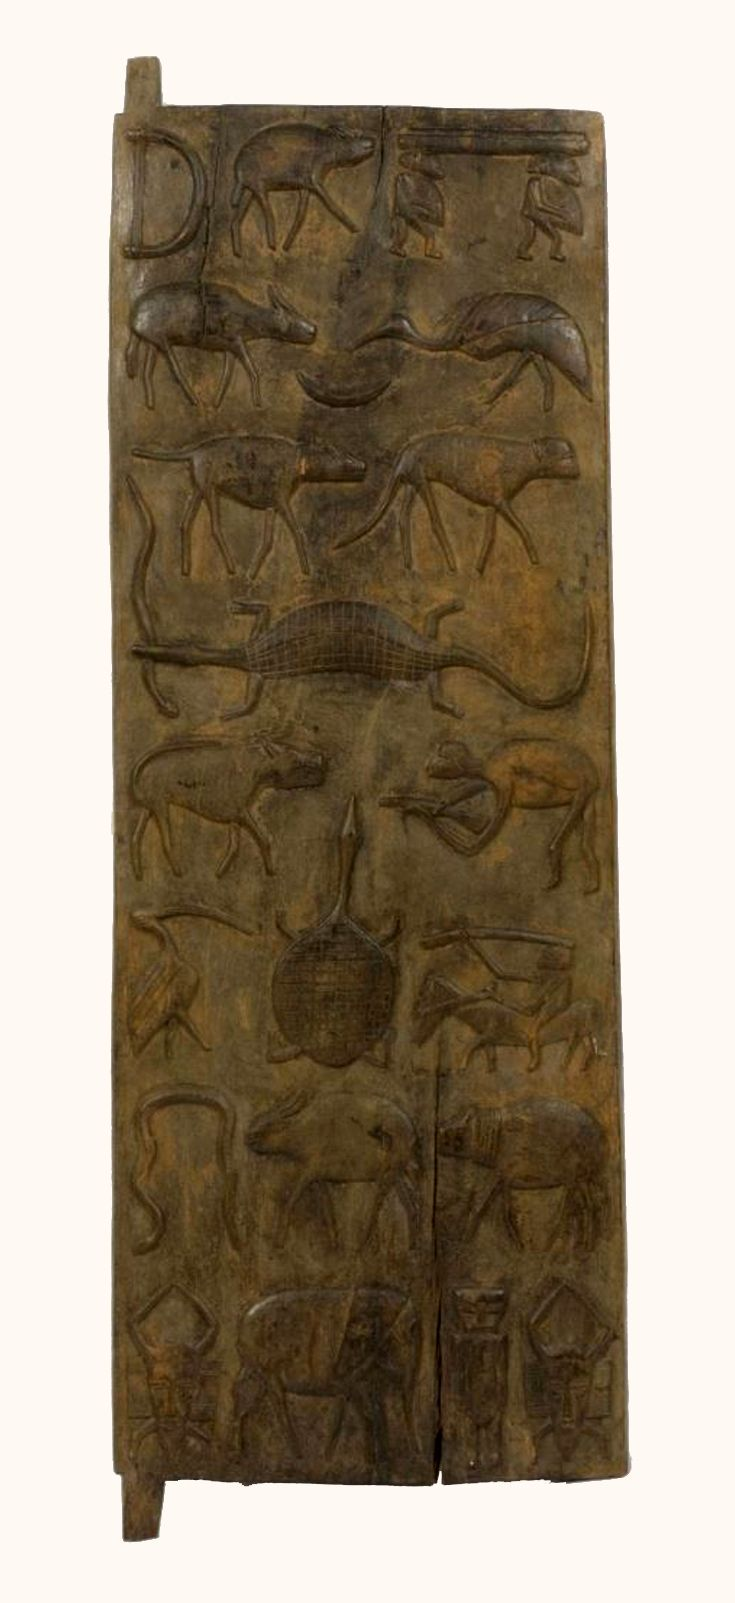 Nok - mysterious sculptures from West Africa